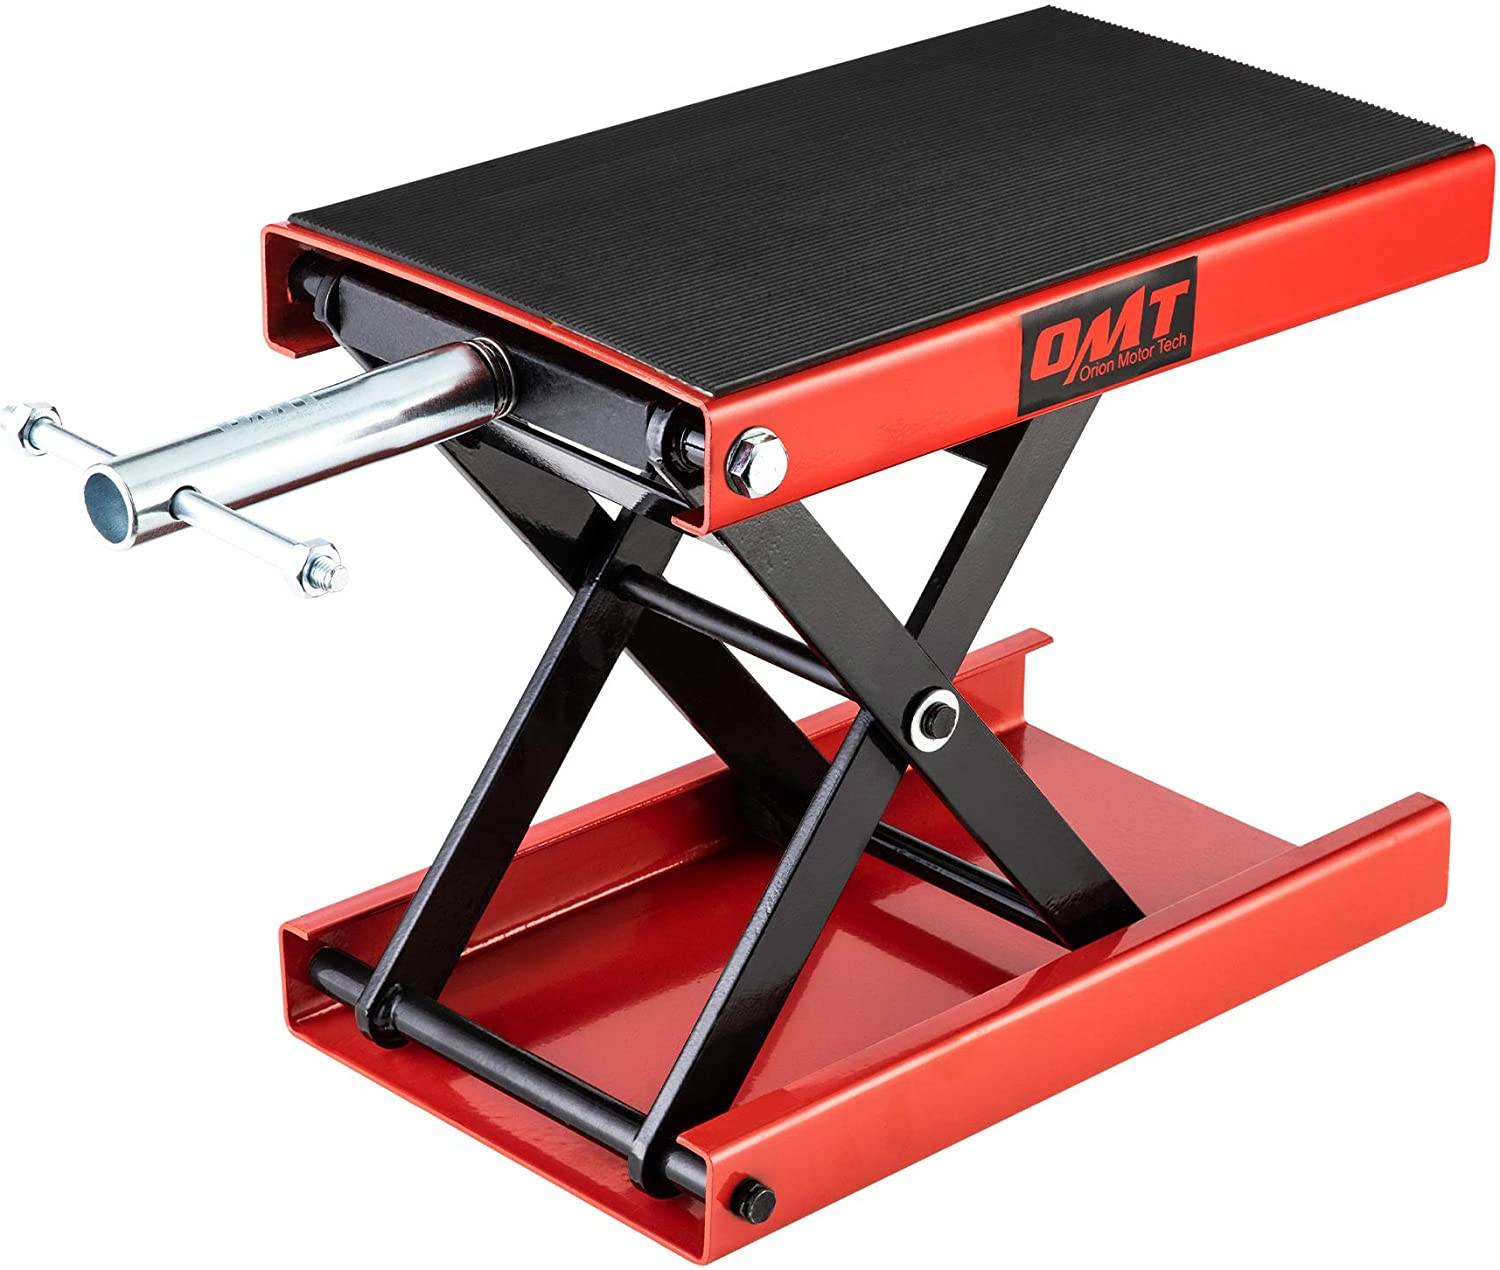 Orion Motor Tech Dilated Scissor Lift Jack